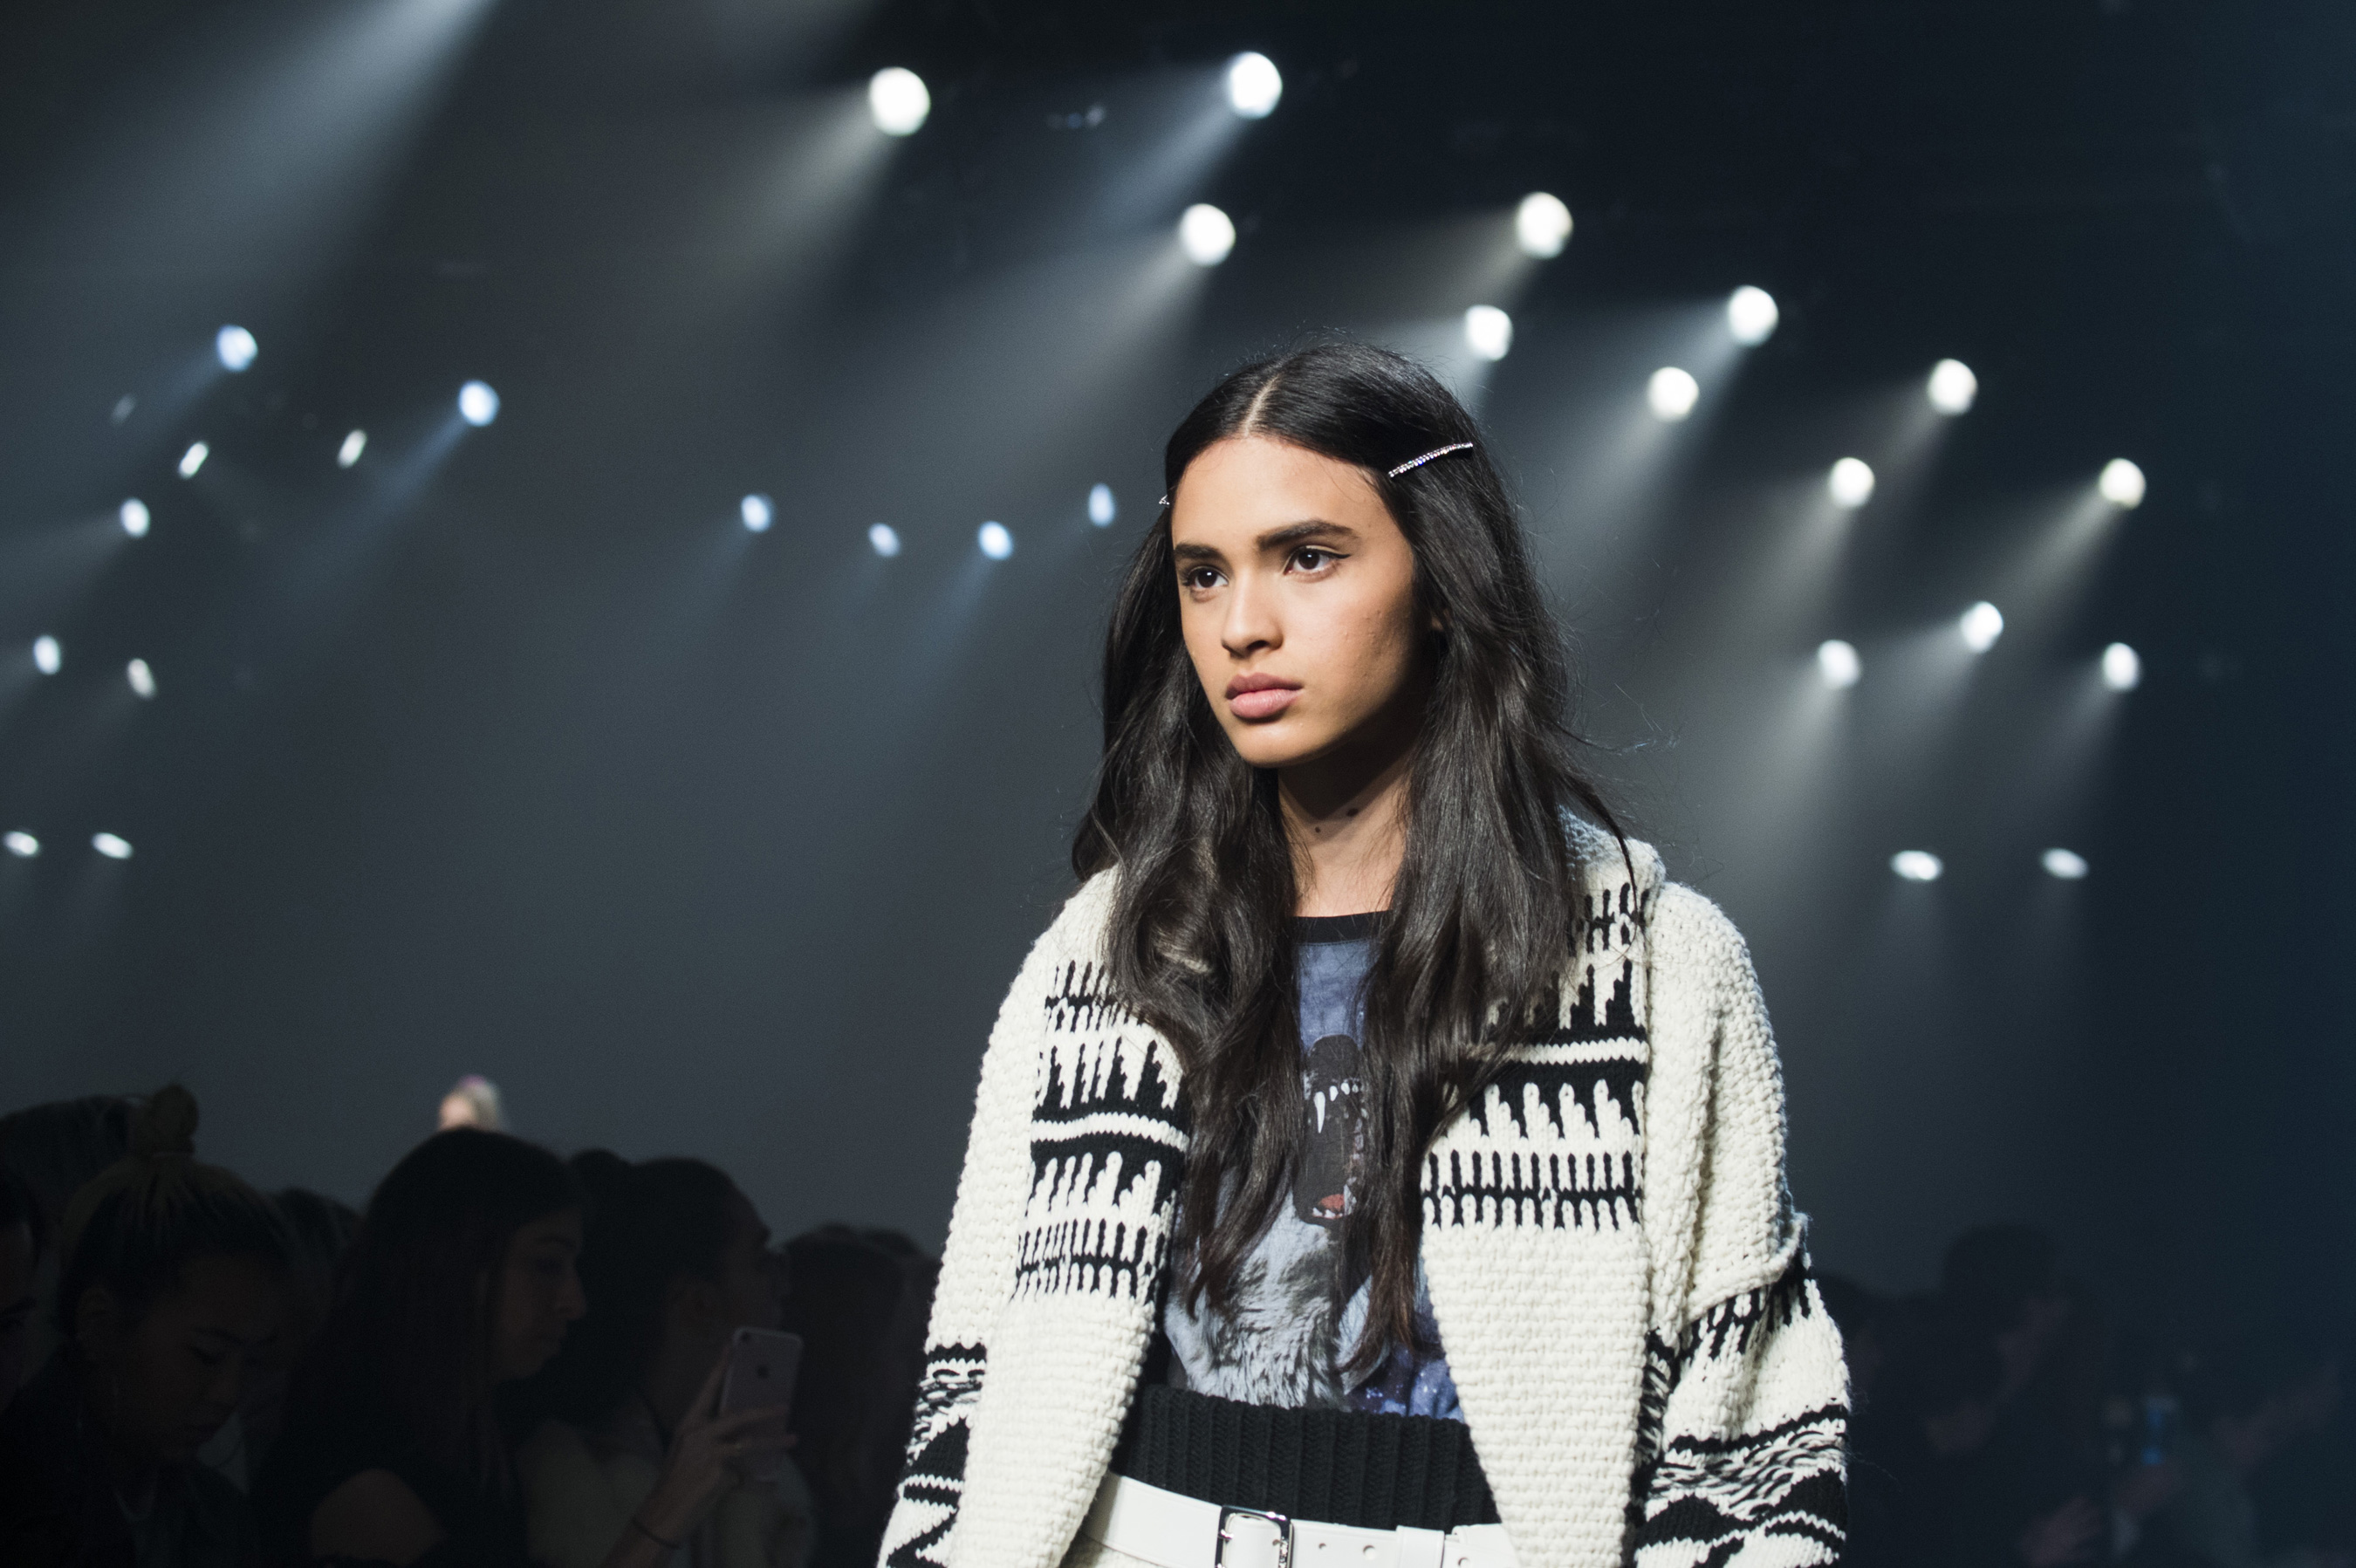 Zadig & Voltaire Fall 2018 Fashion Show Atmosphere